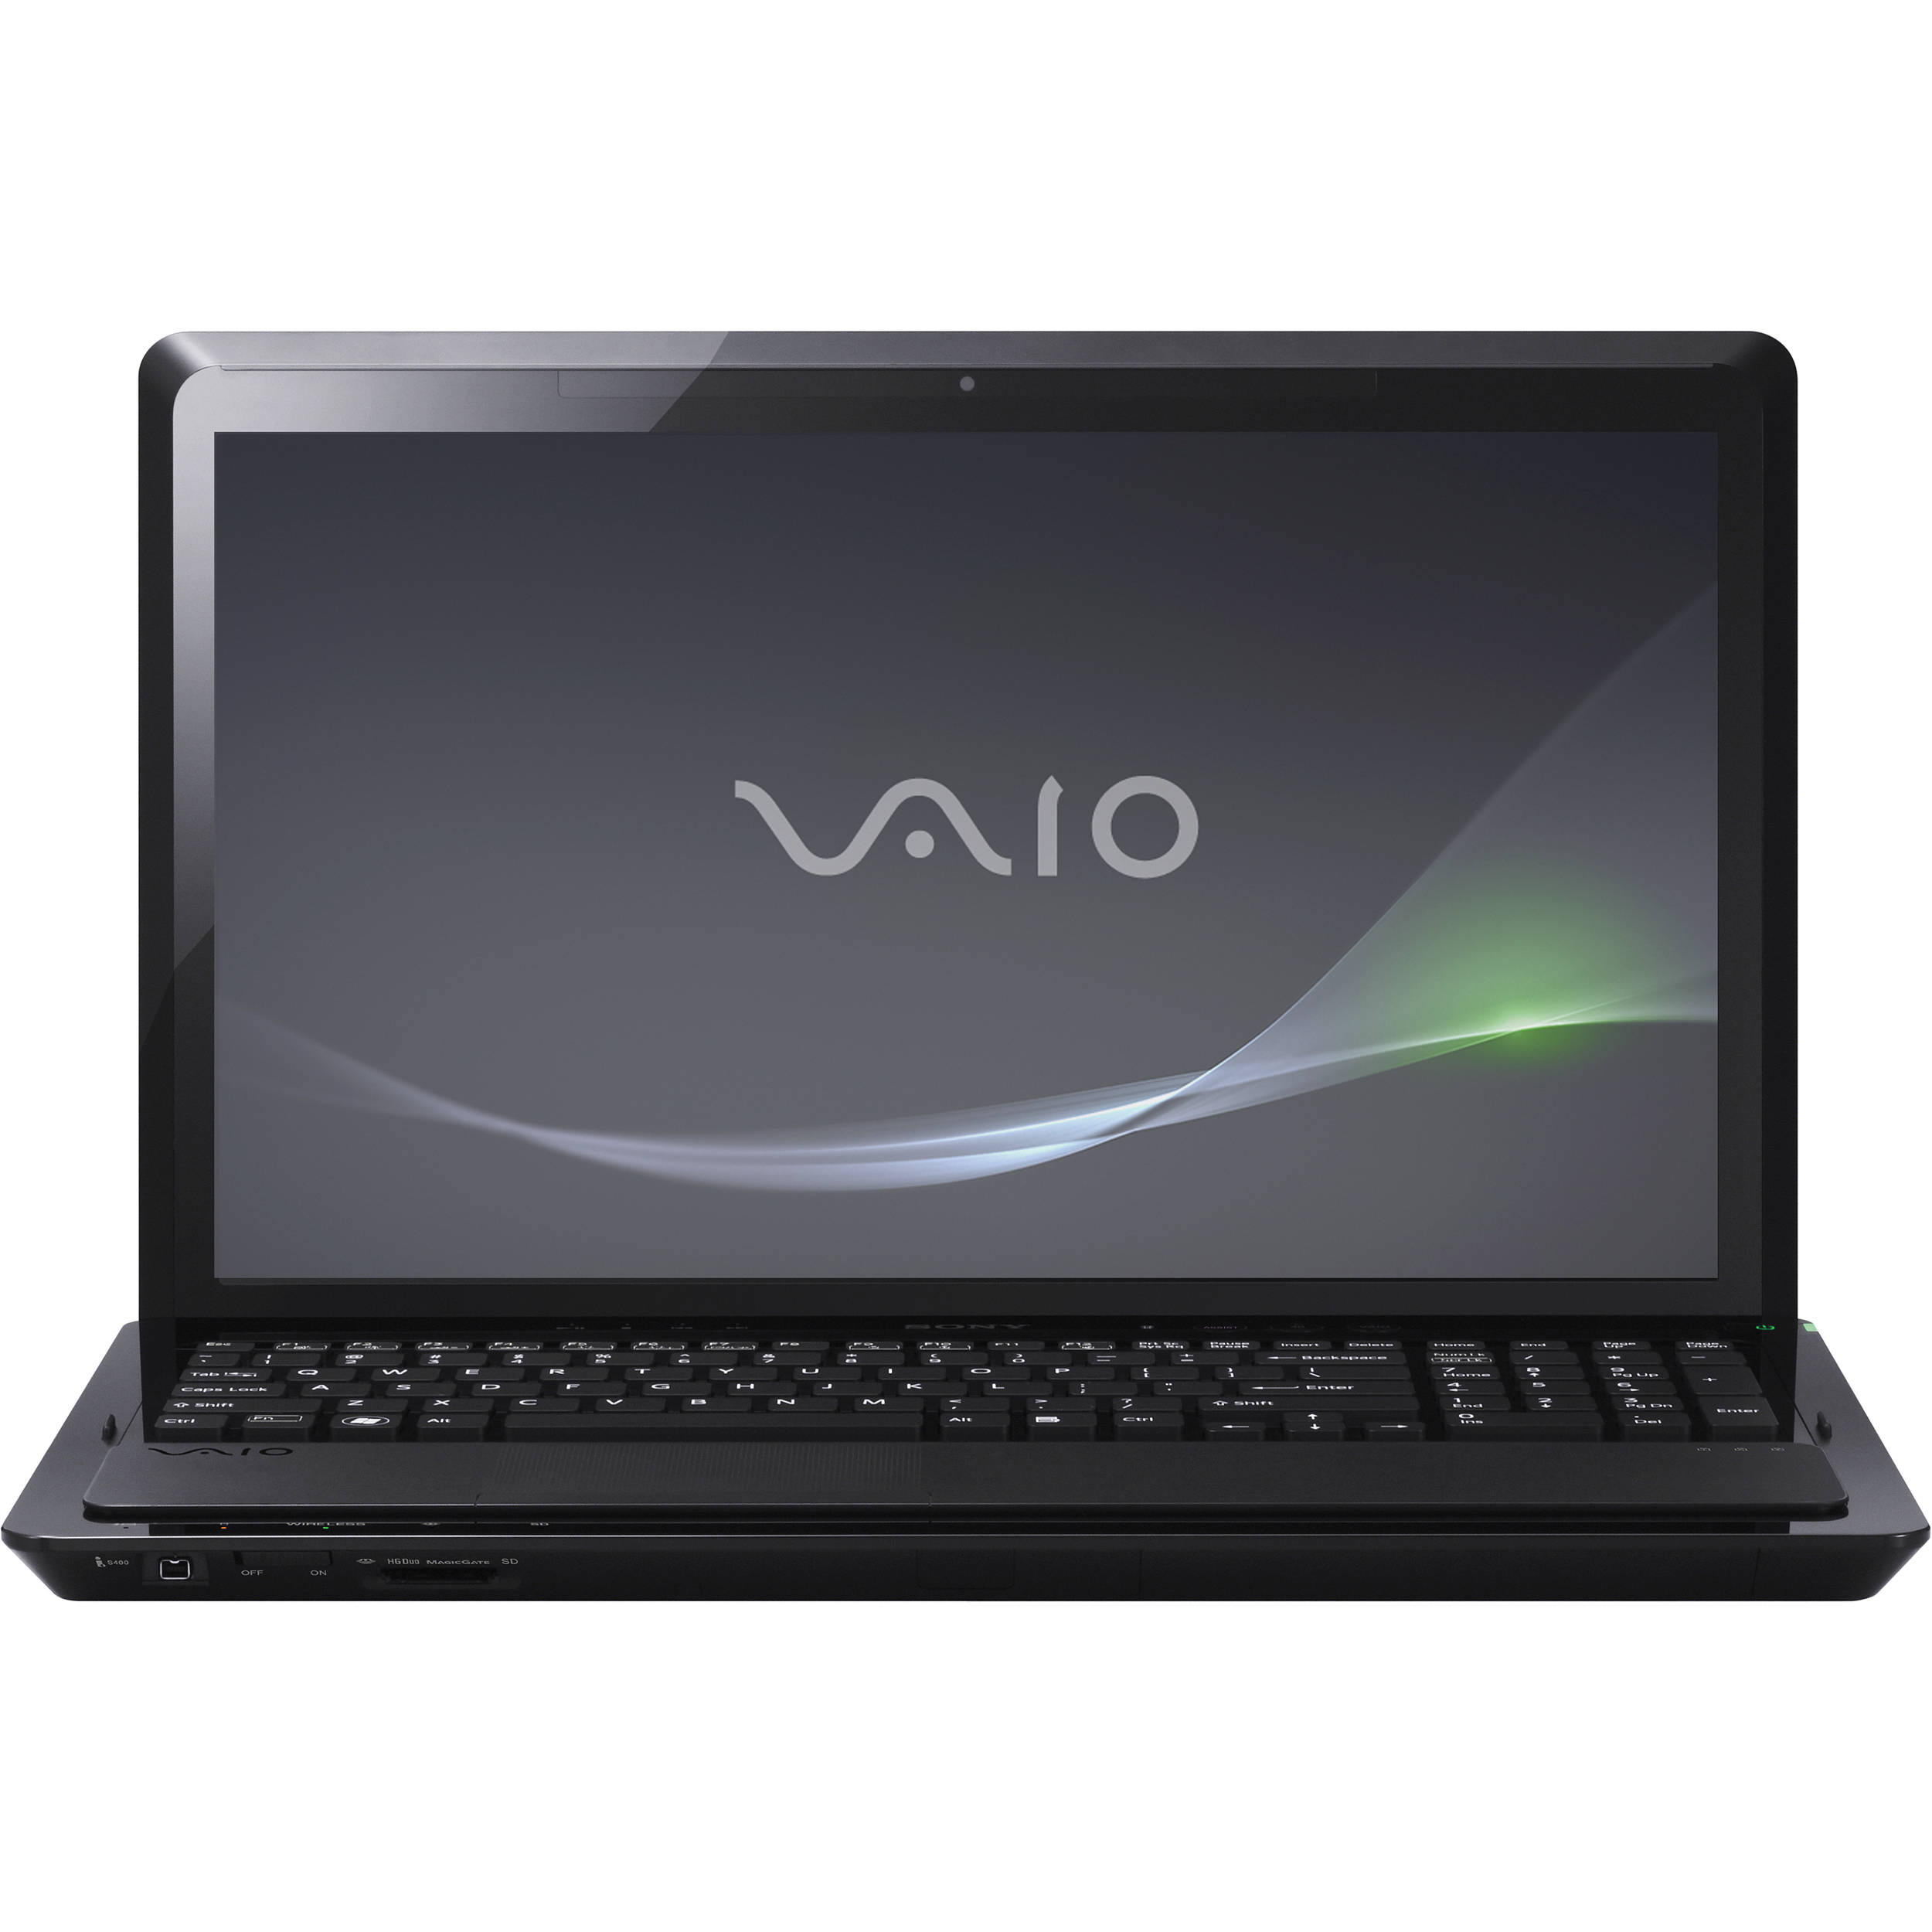 Sony Vaio VPCF227FX NVIDIA Guard Service X64 Driver Download